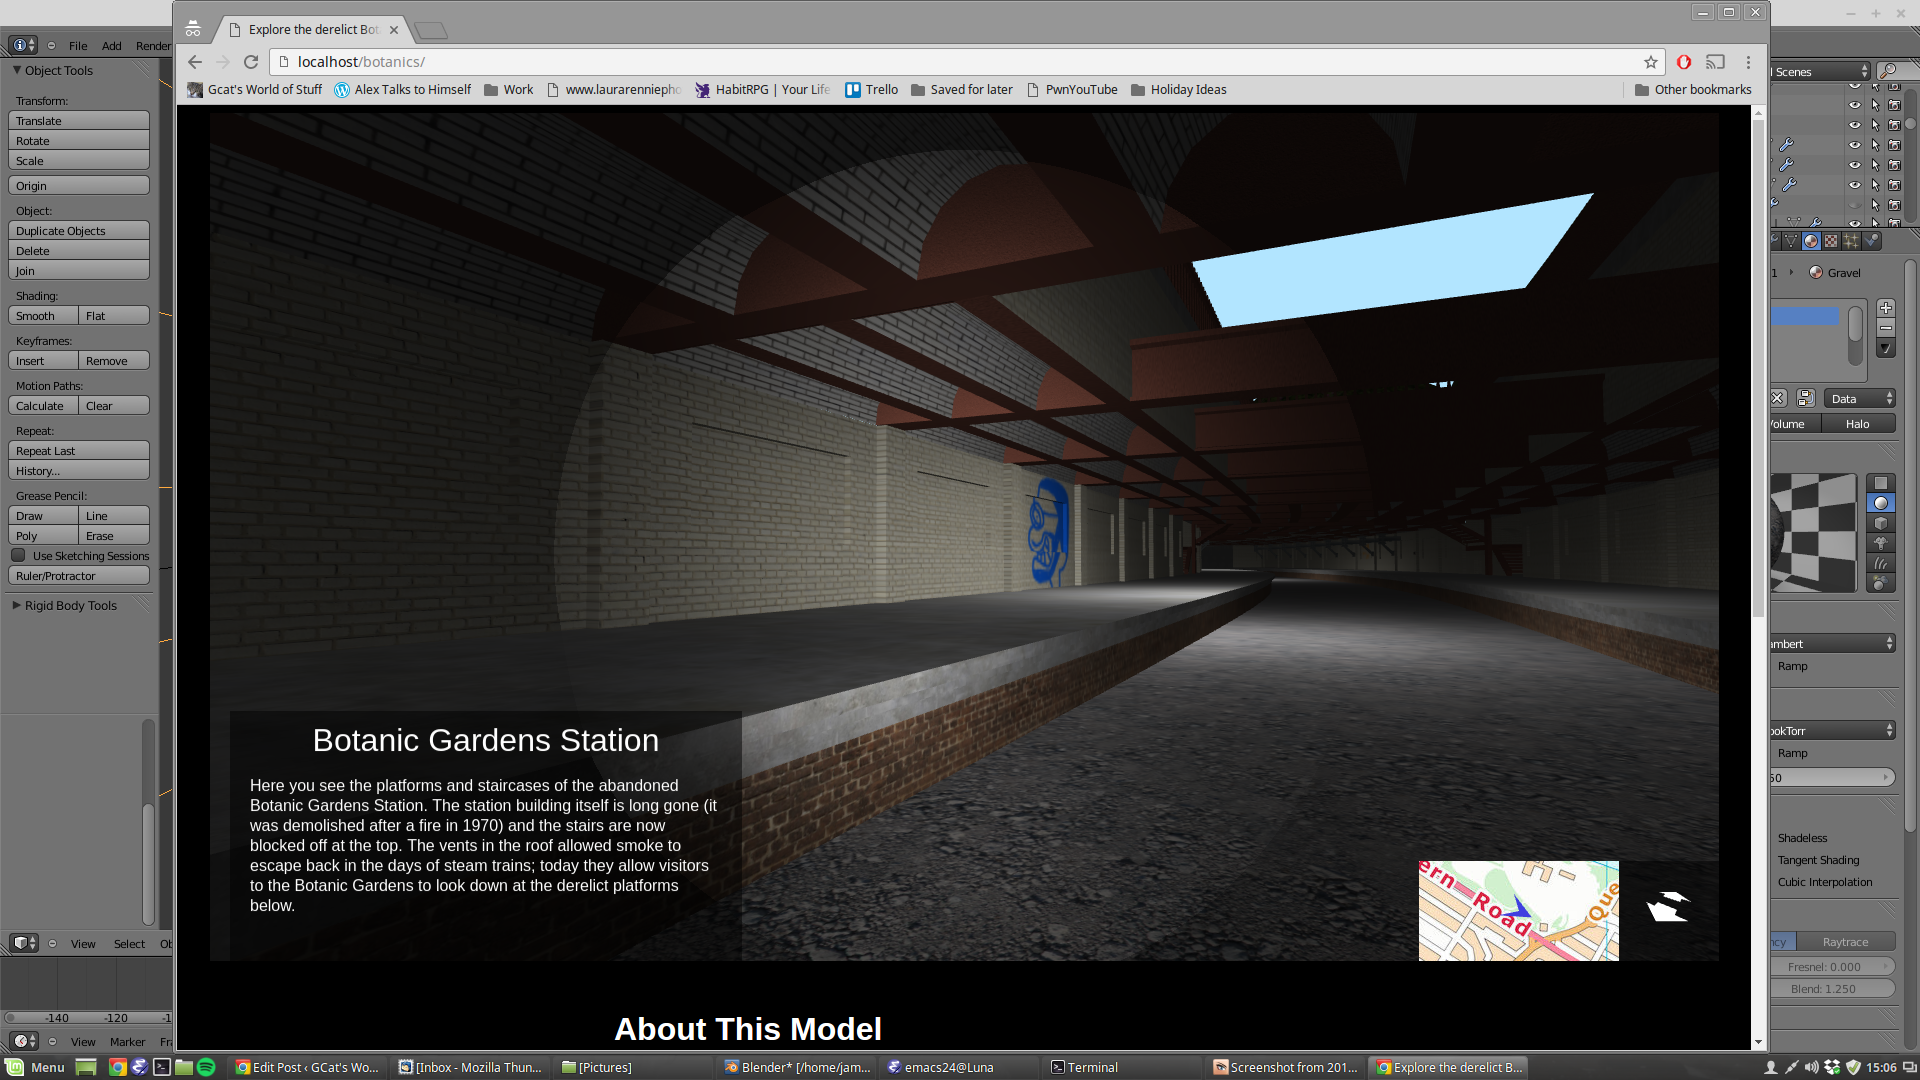 The finished WebGL viewer